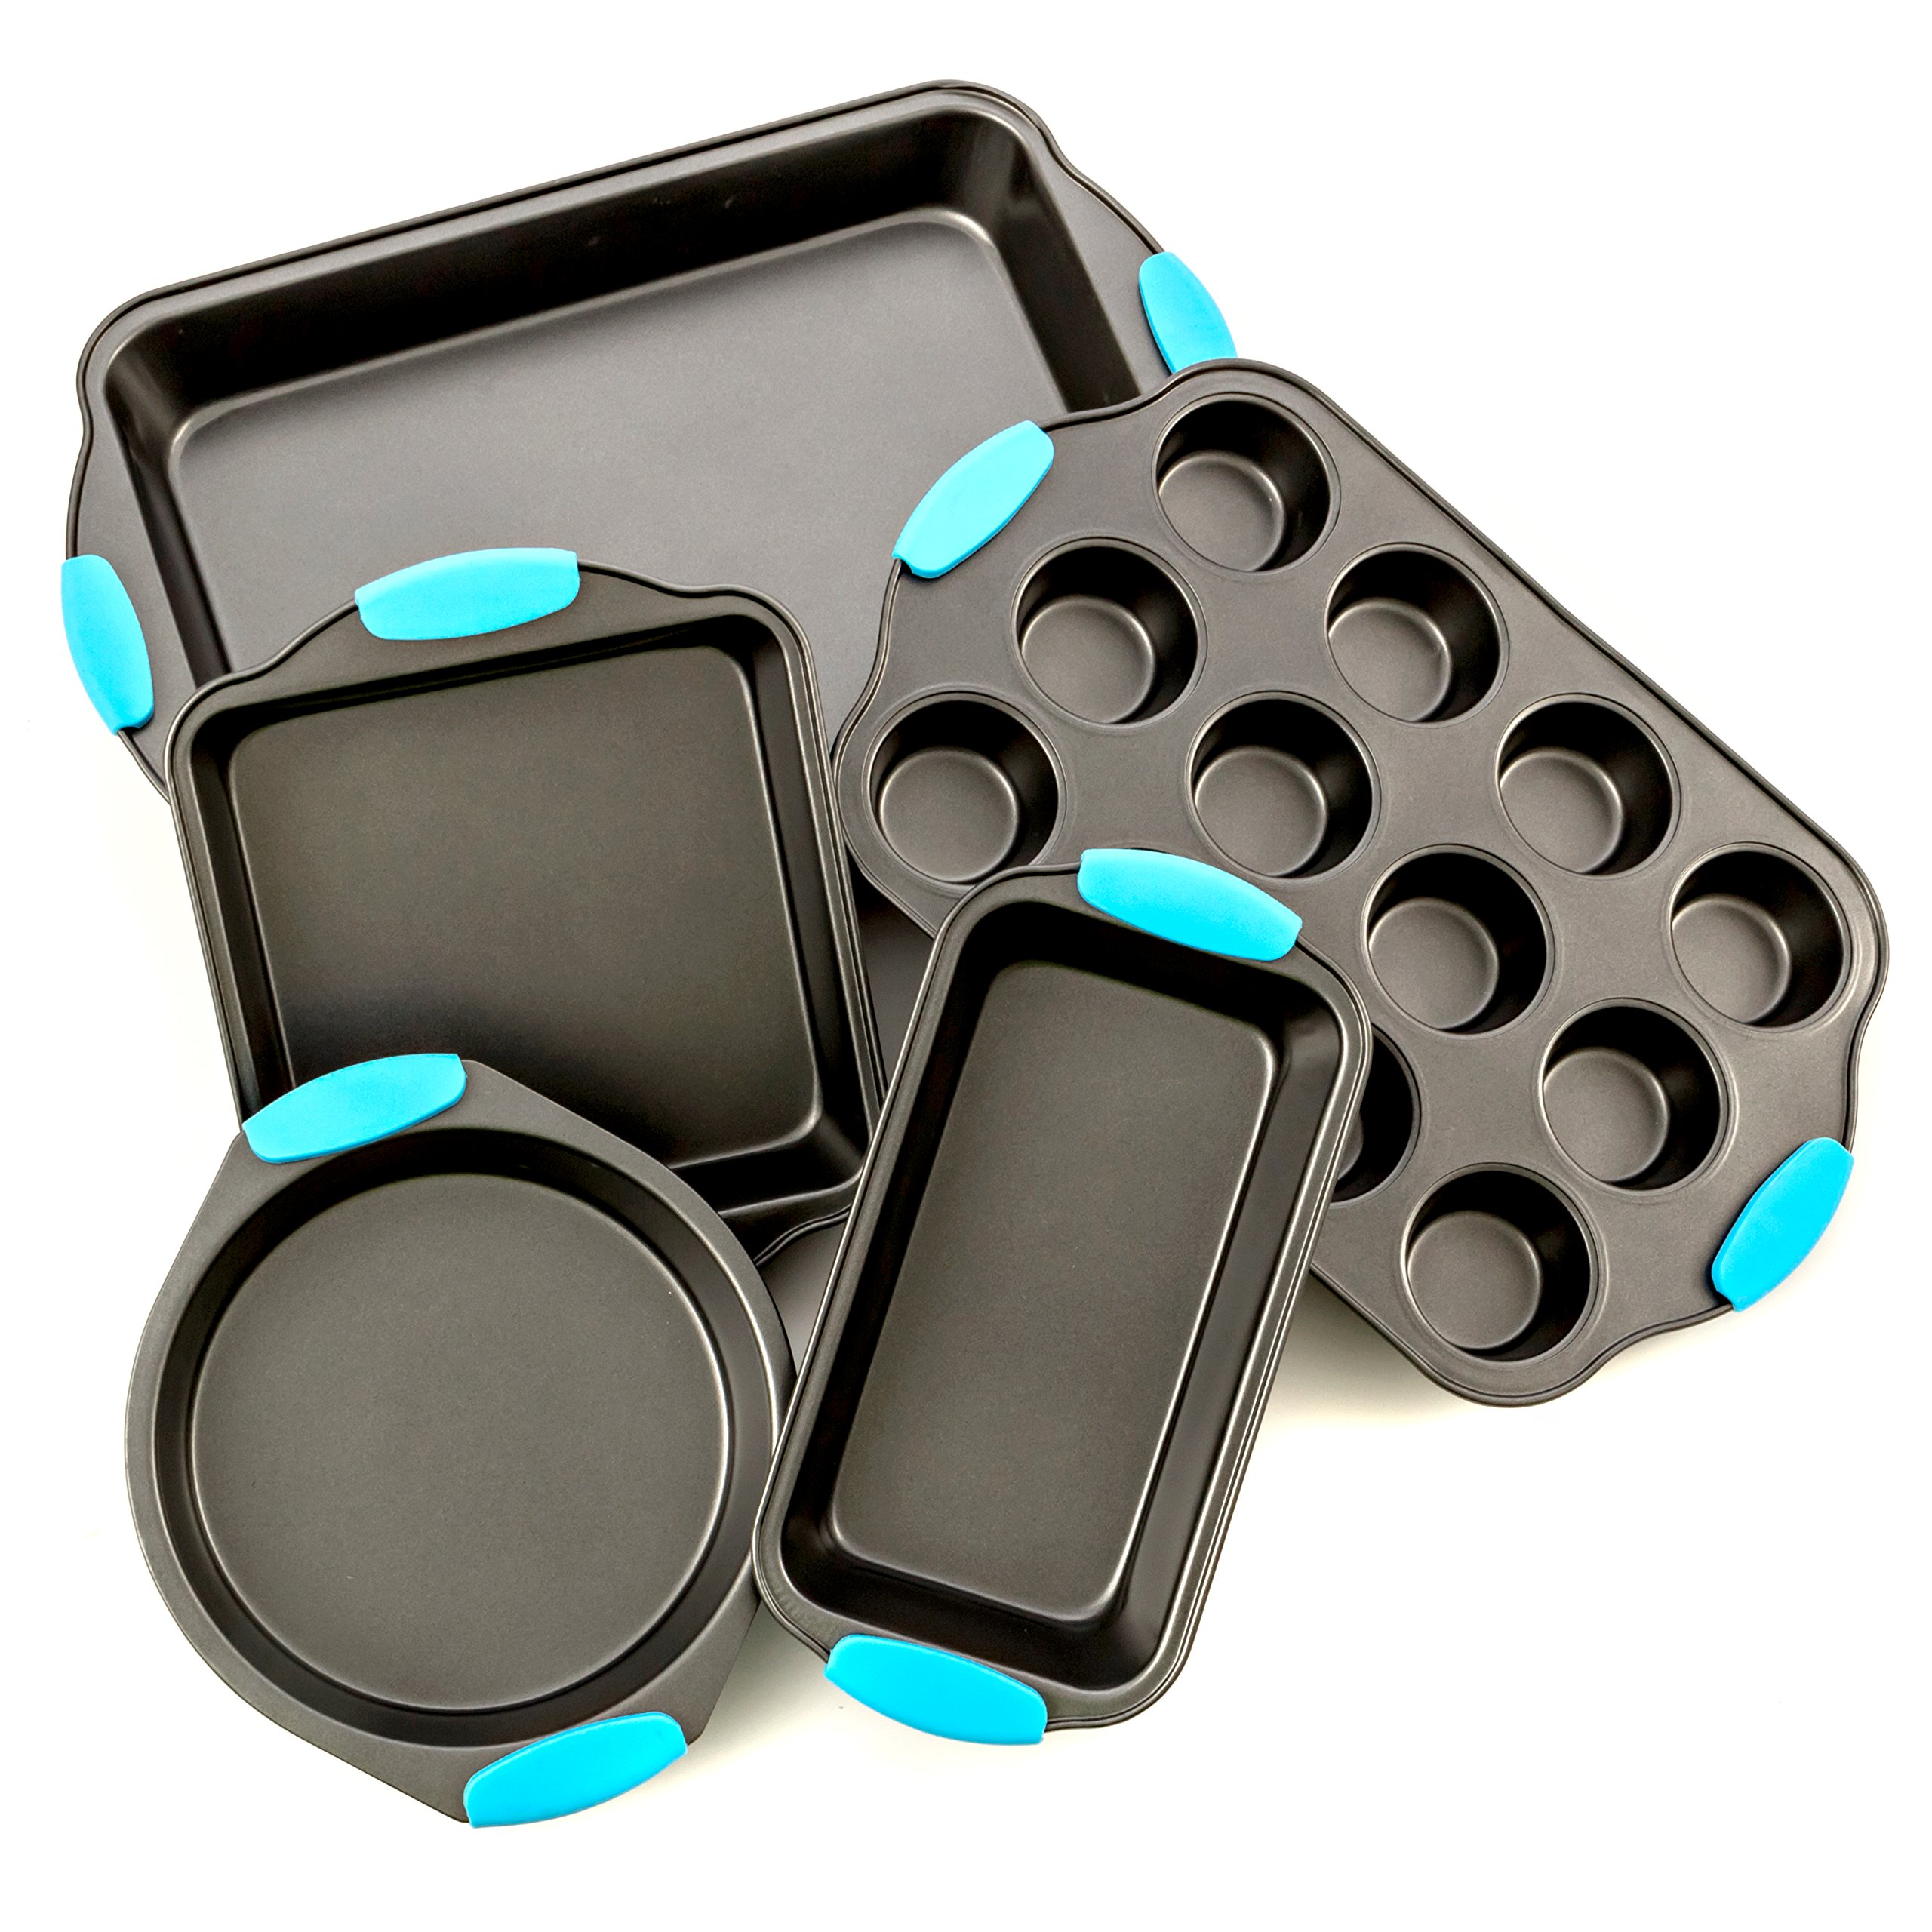 Bakeware Set -Premium Nonstick Baking Pans -Set of 5- Includes a Pie Pan, Square Cake Pan, Baking Pan, Bread Pan, Cup Cake Pan with Blue Silicone Hnadles By Intriom